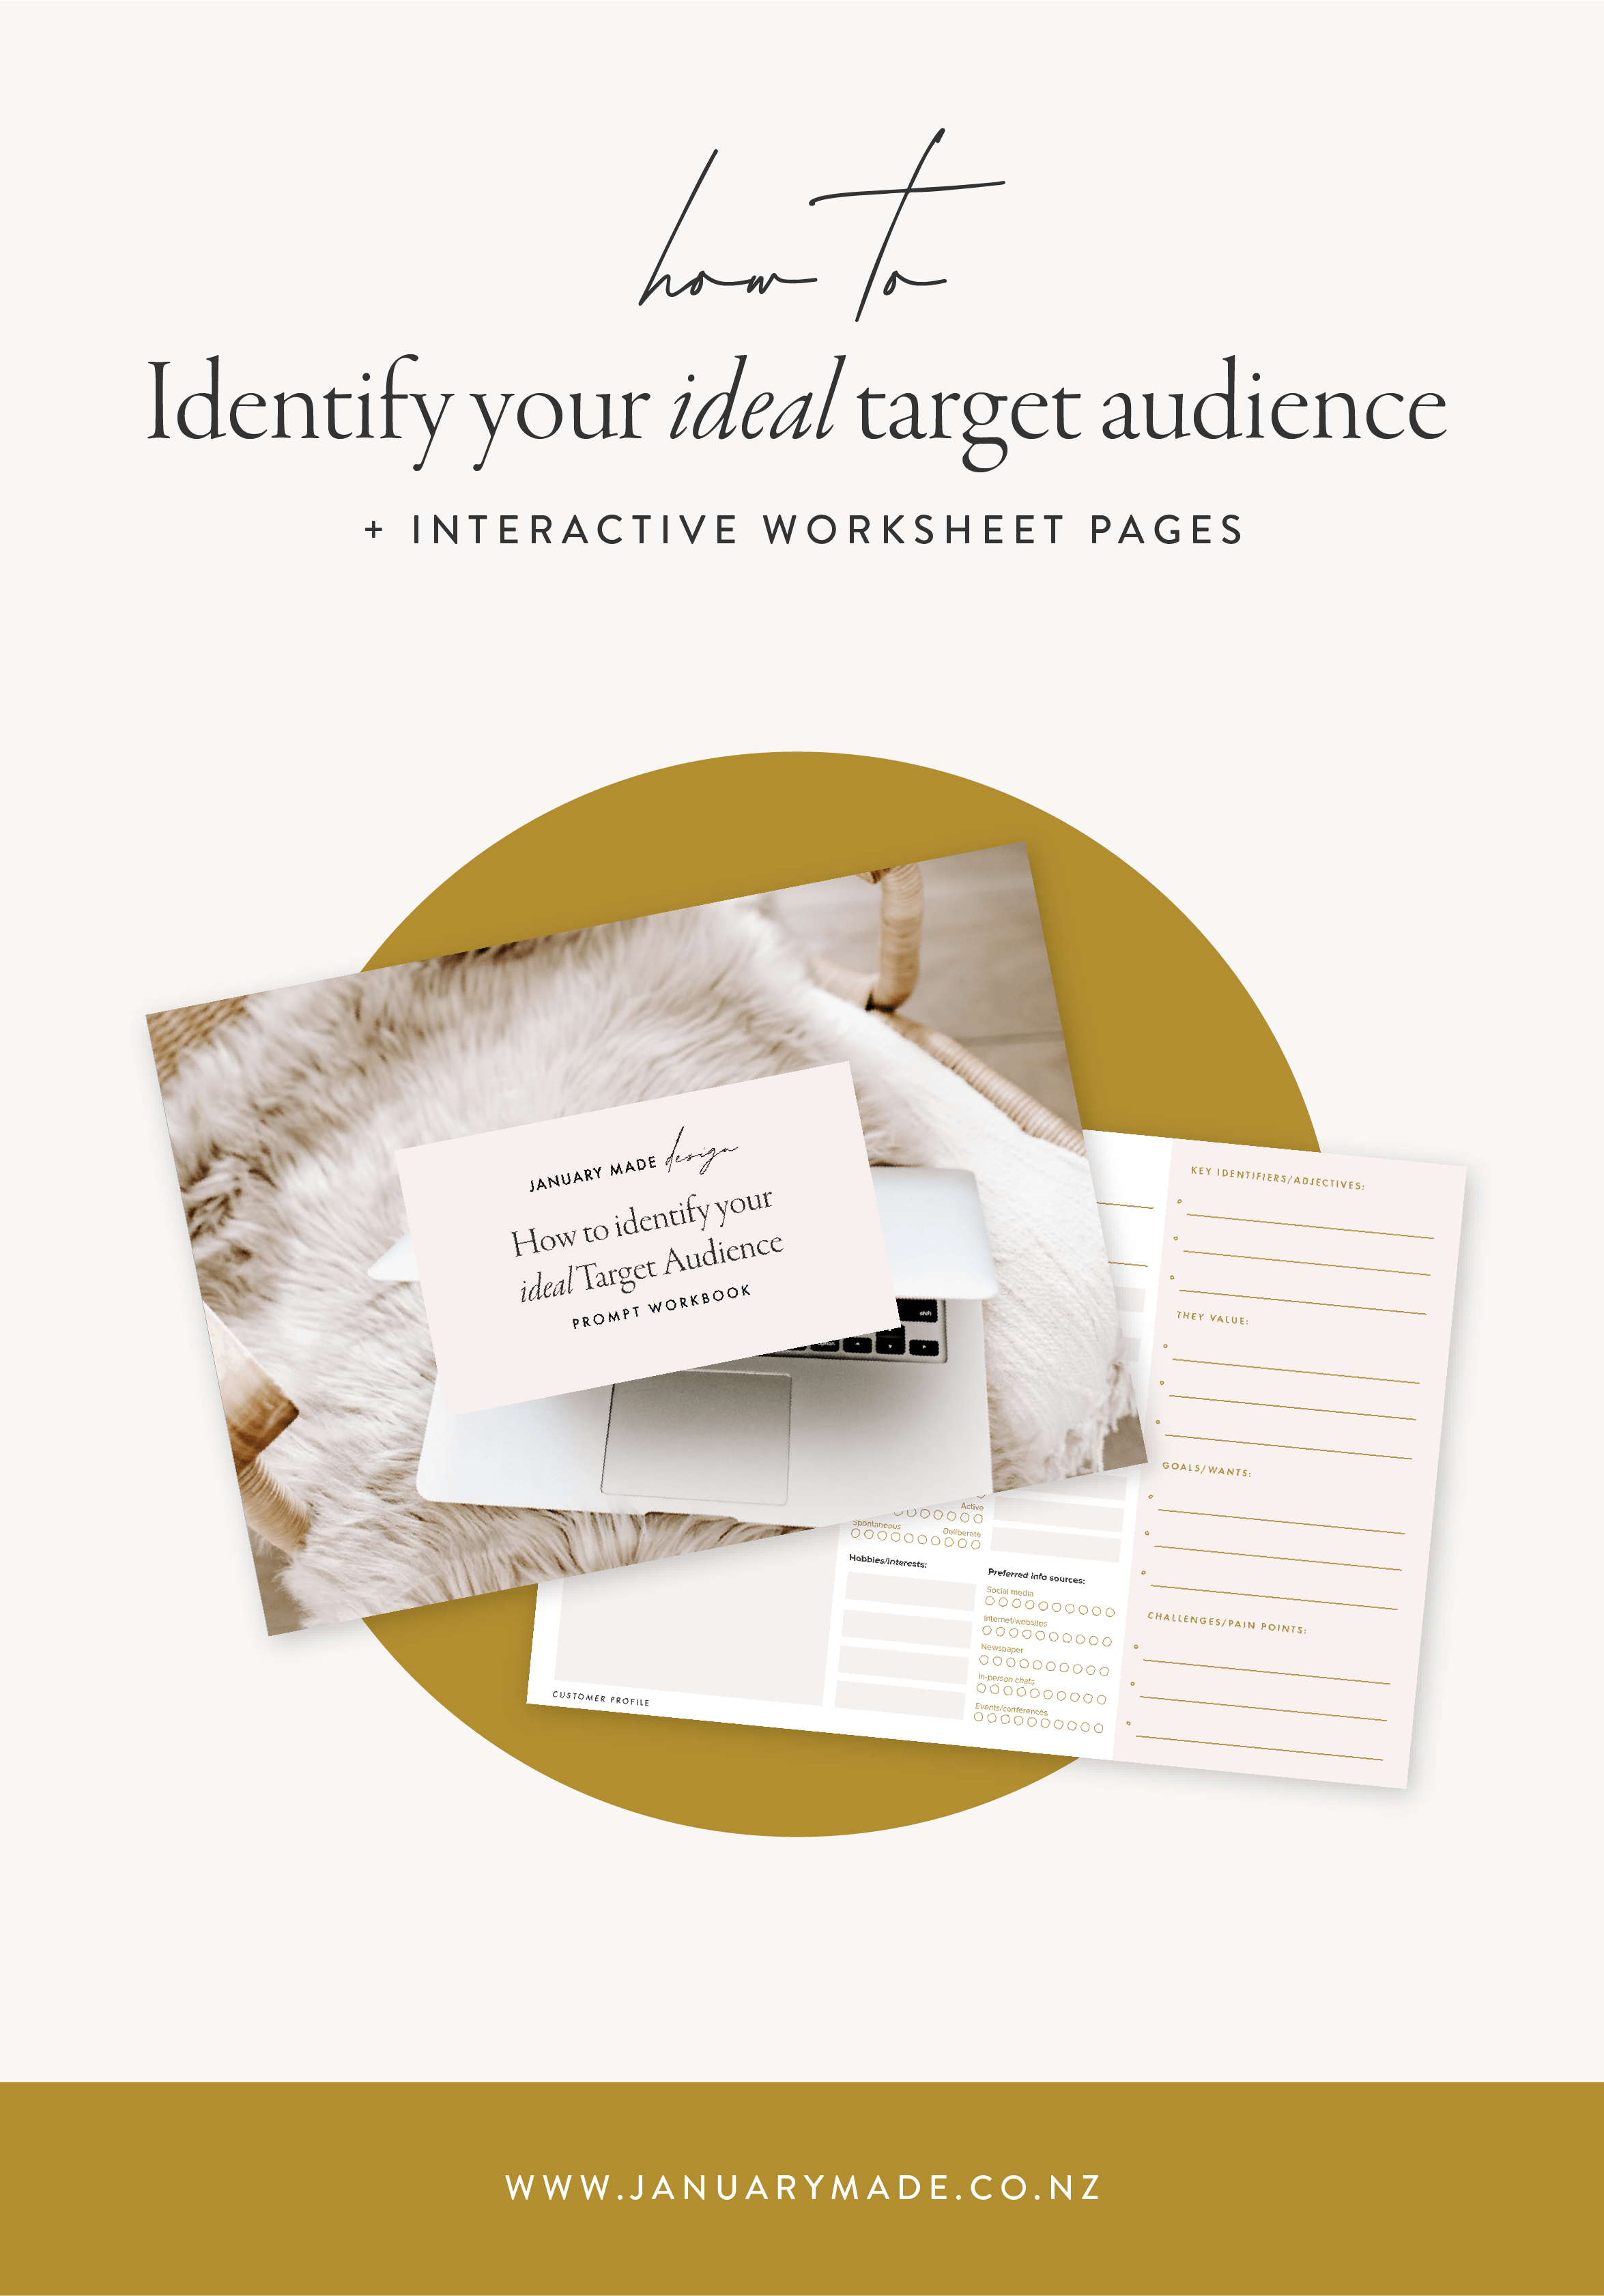 How to Identify Your Ideal Target Audience - January Made Design